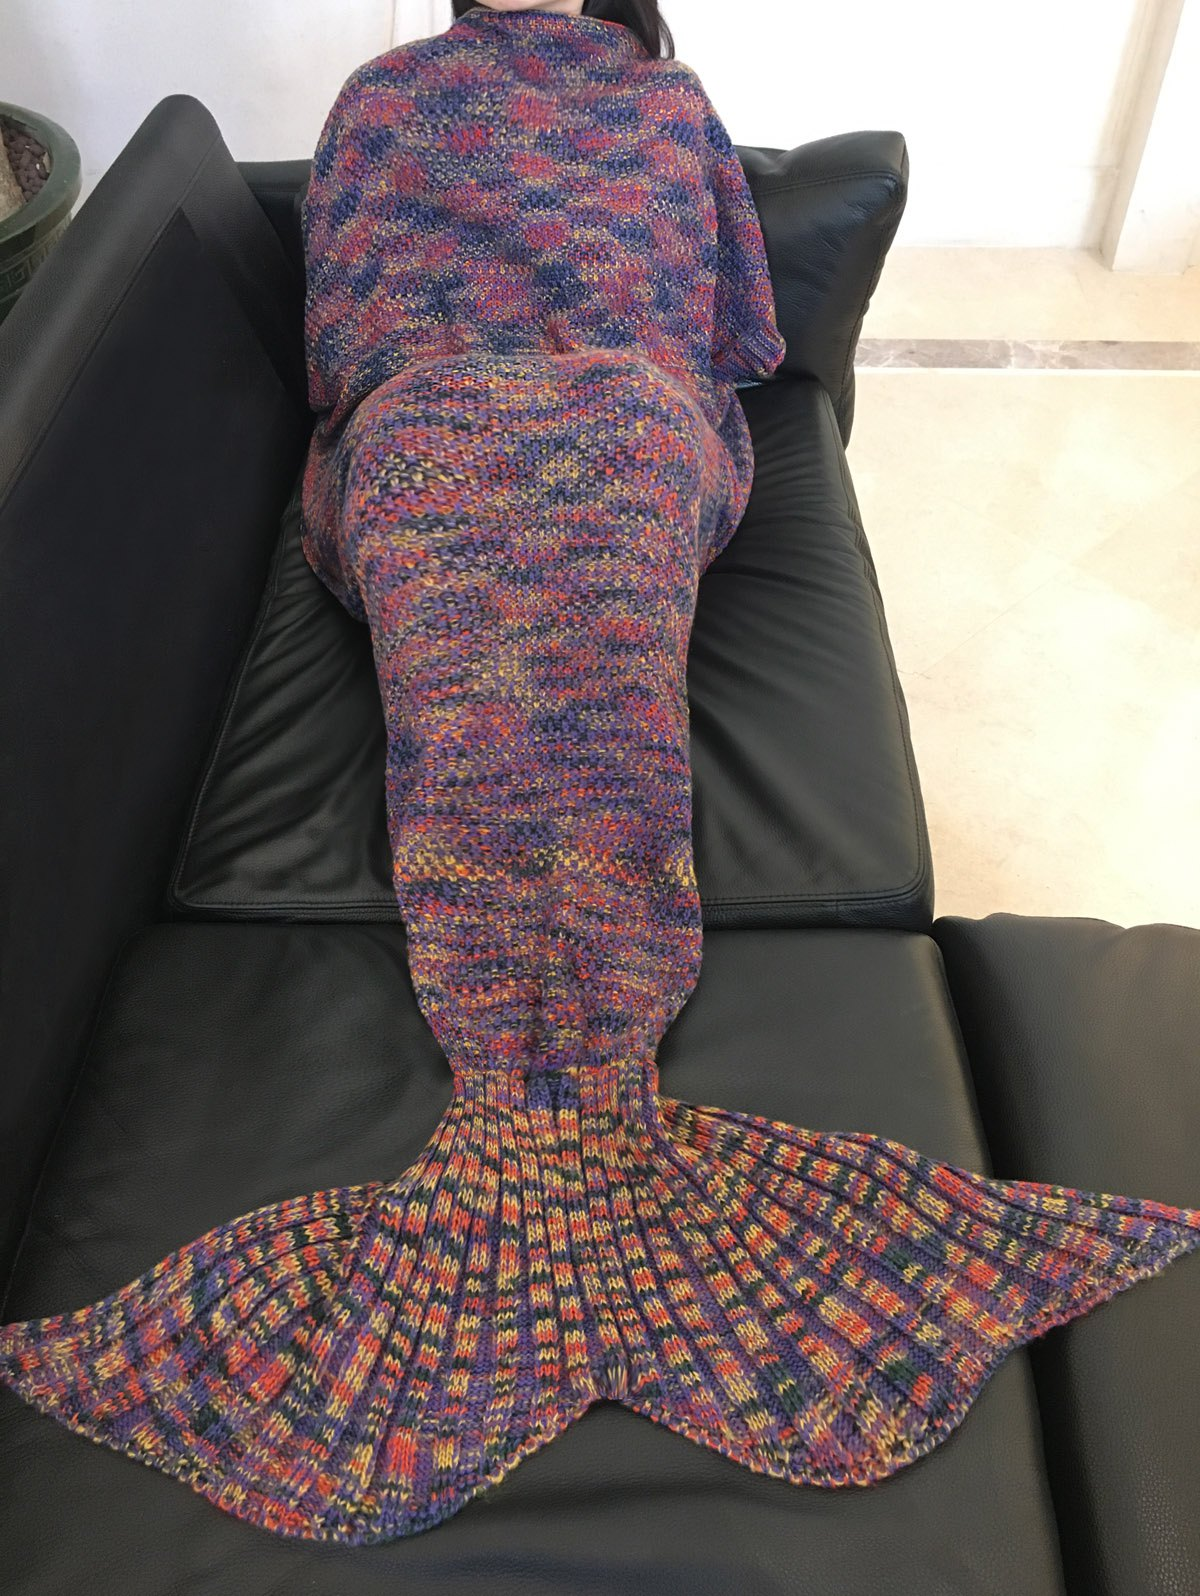 Cheap Fashion Colorful Printed Warmth Wool Knitted Mermaid Tail Design Blanket